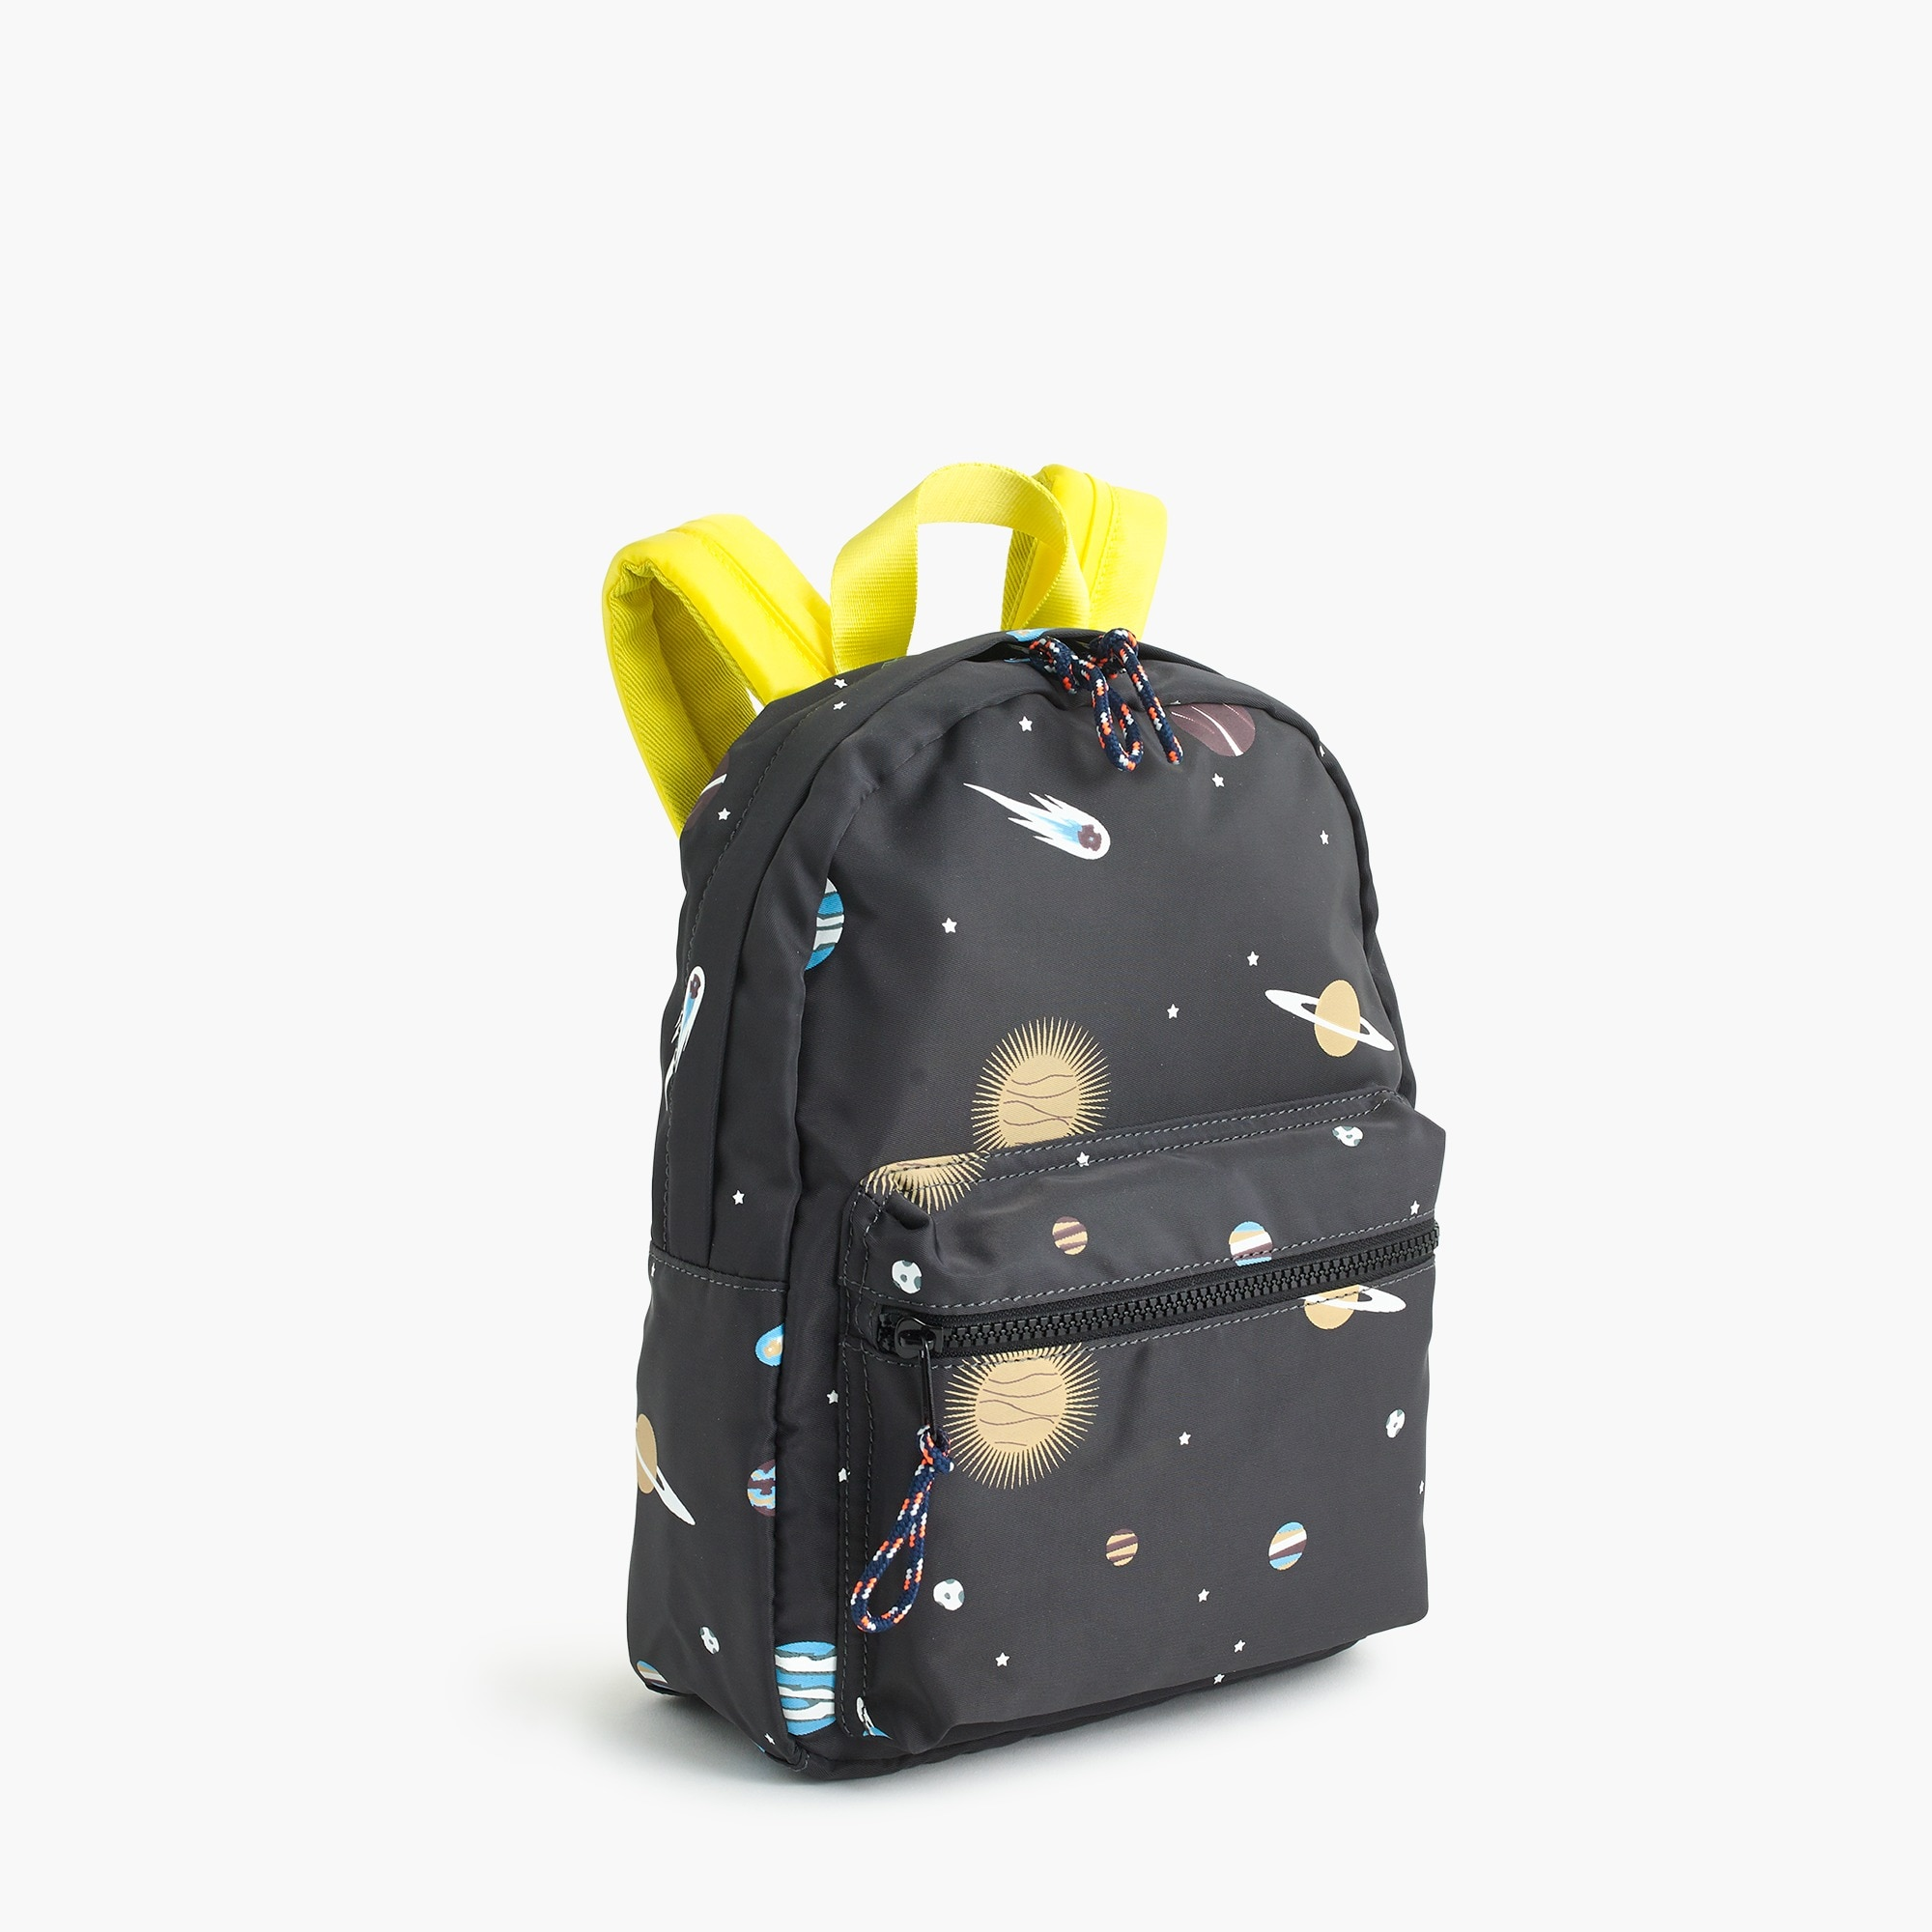 Kids' glow-in-the-dark space-print mini backpack boy new arrivals c